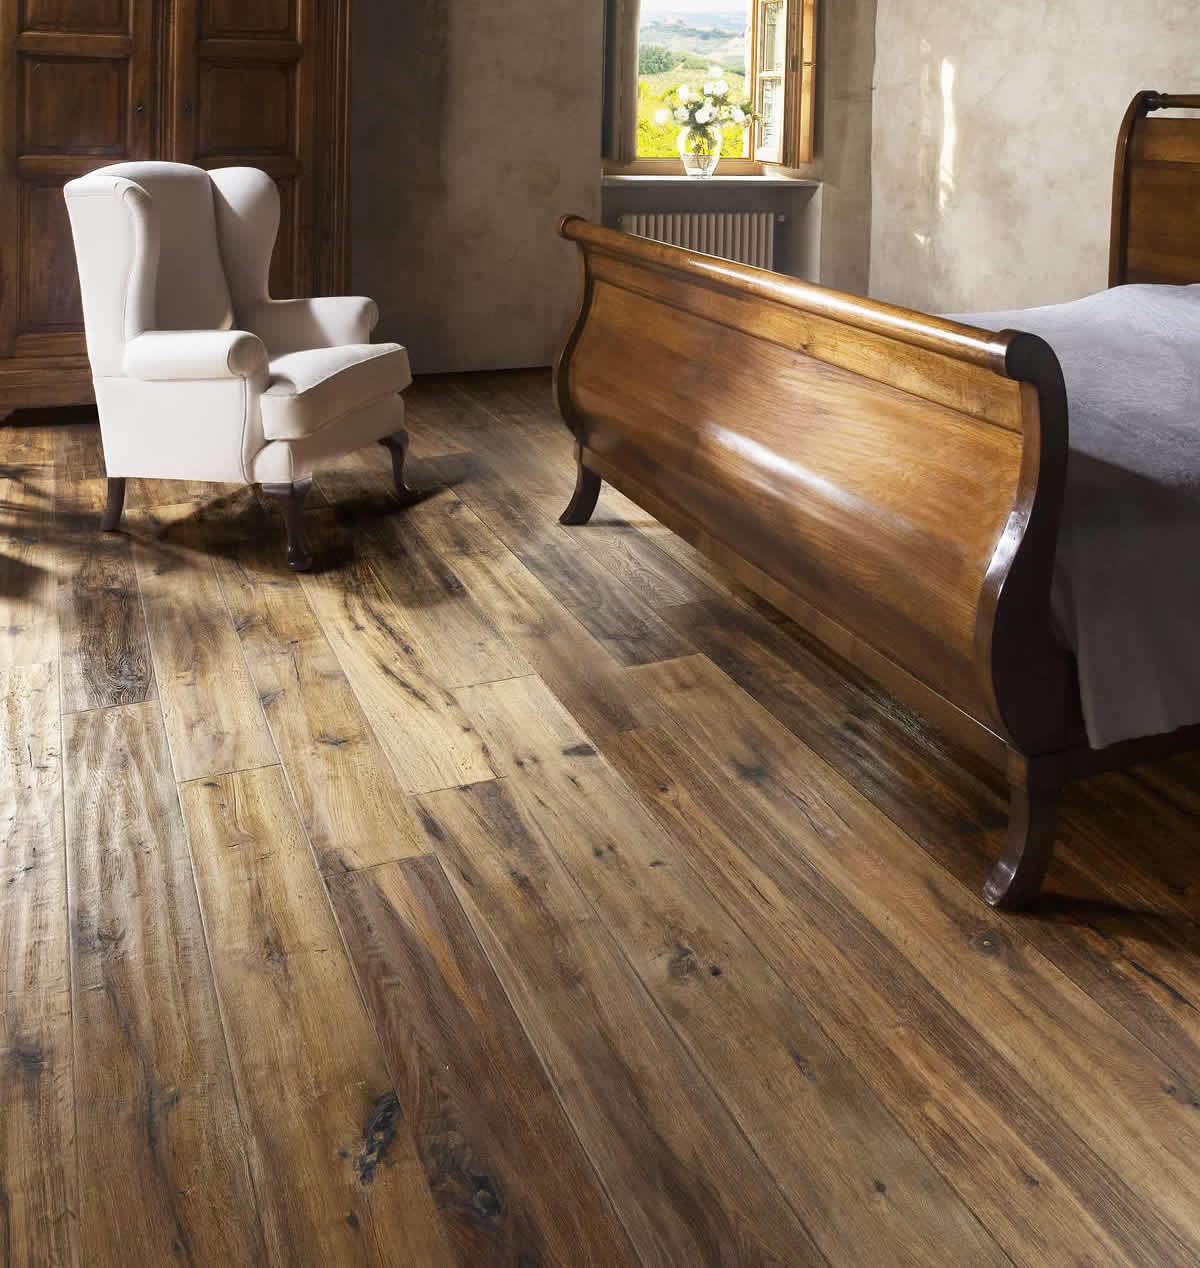 Kahrs artisan oak earth engineered wood flooring for Kahrs flooring